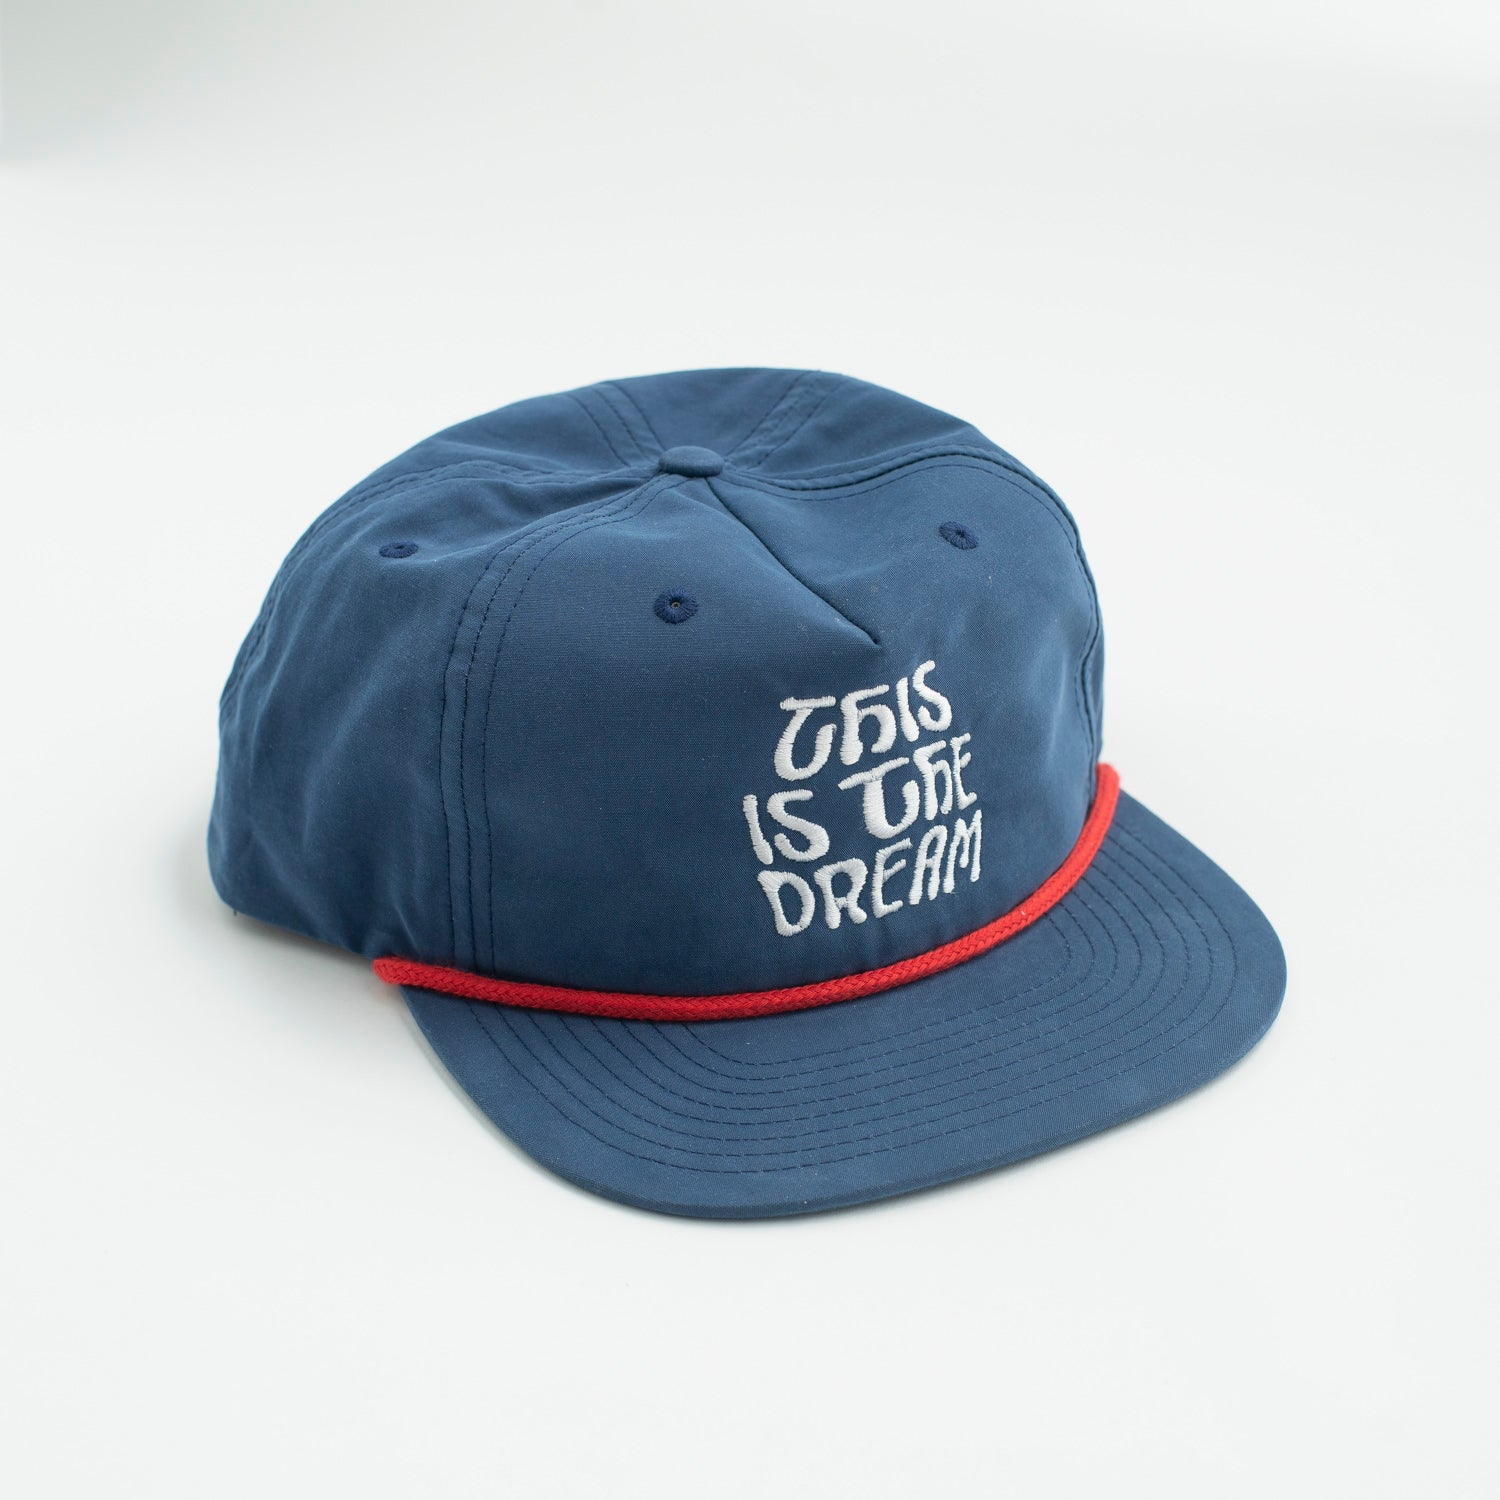 'This is the dream' Snapback Hat